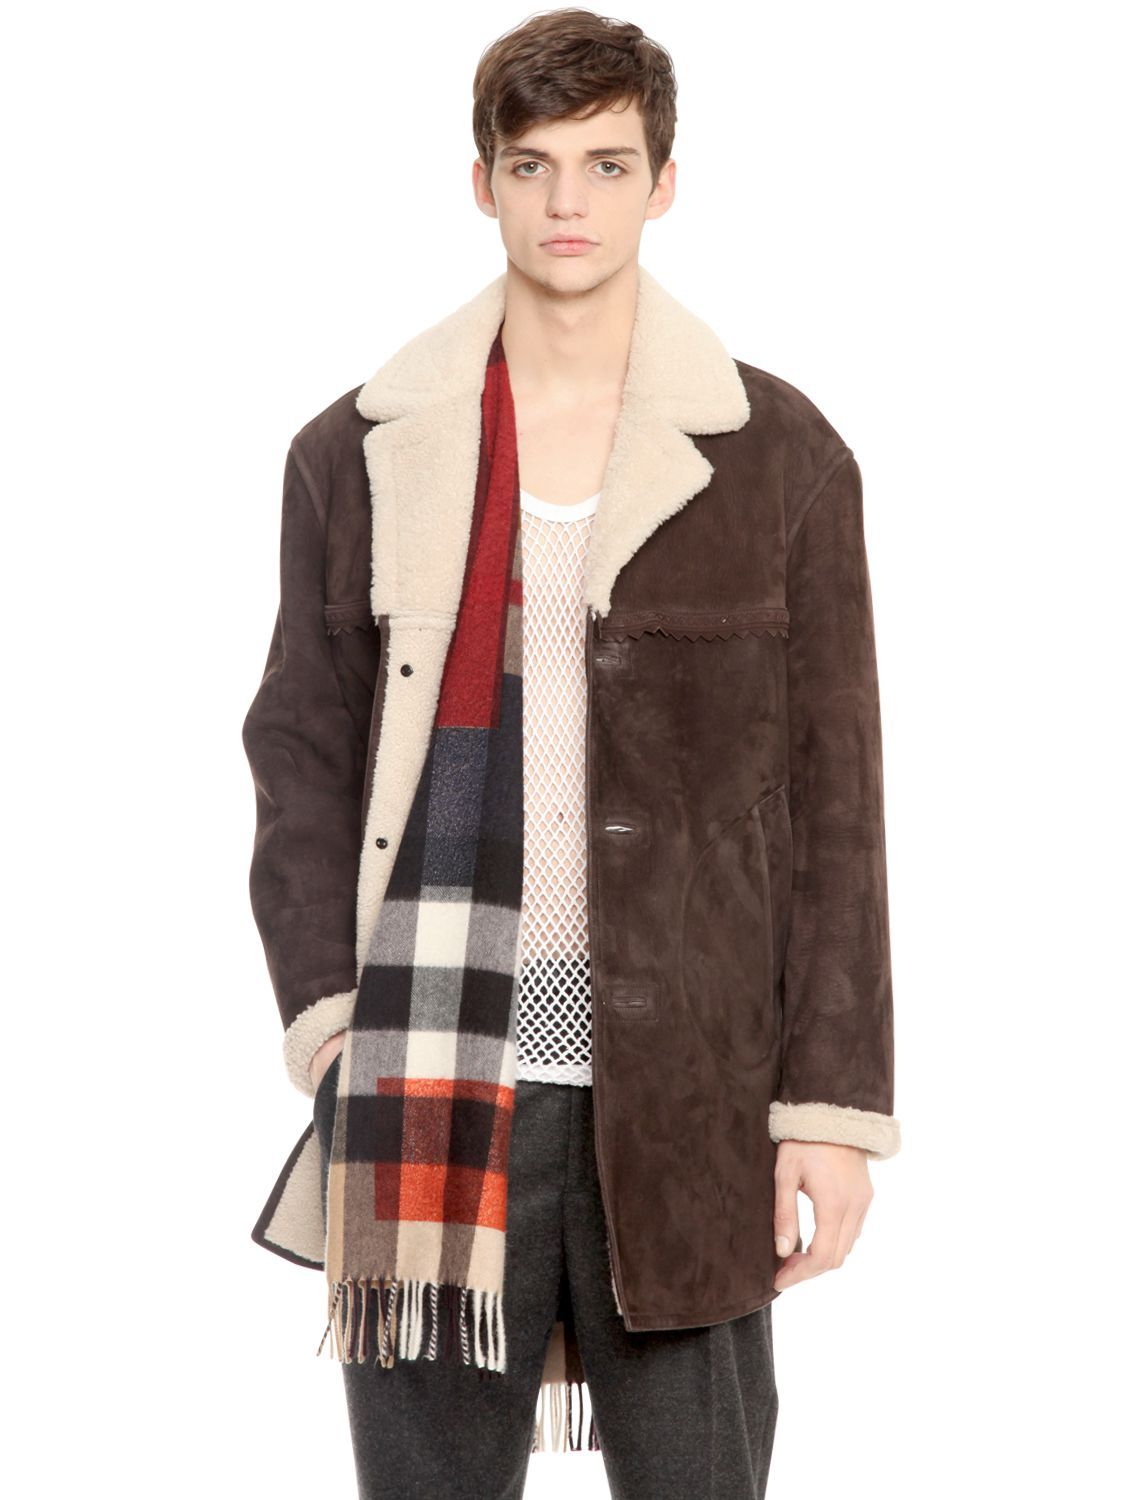 Burberry Prorsum Shearling Suede Coat Brown - Sheepskin | Men's ...